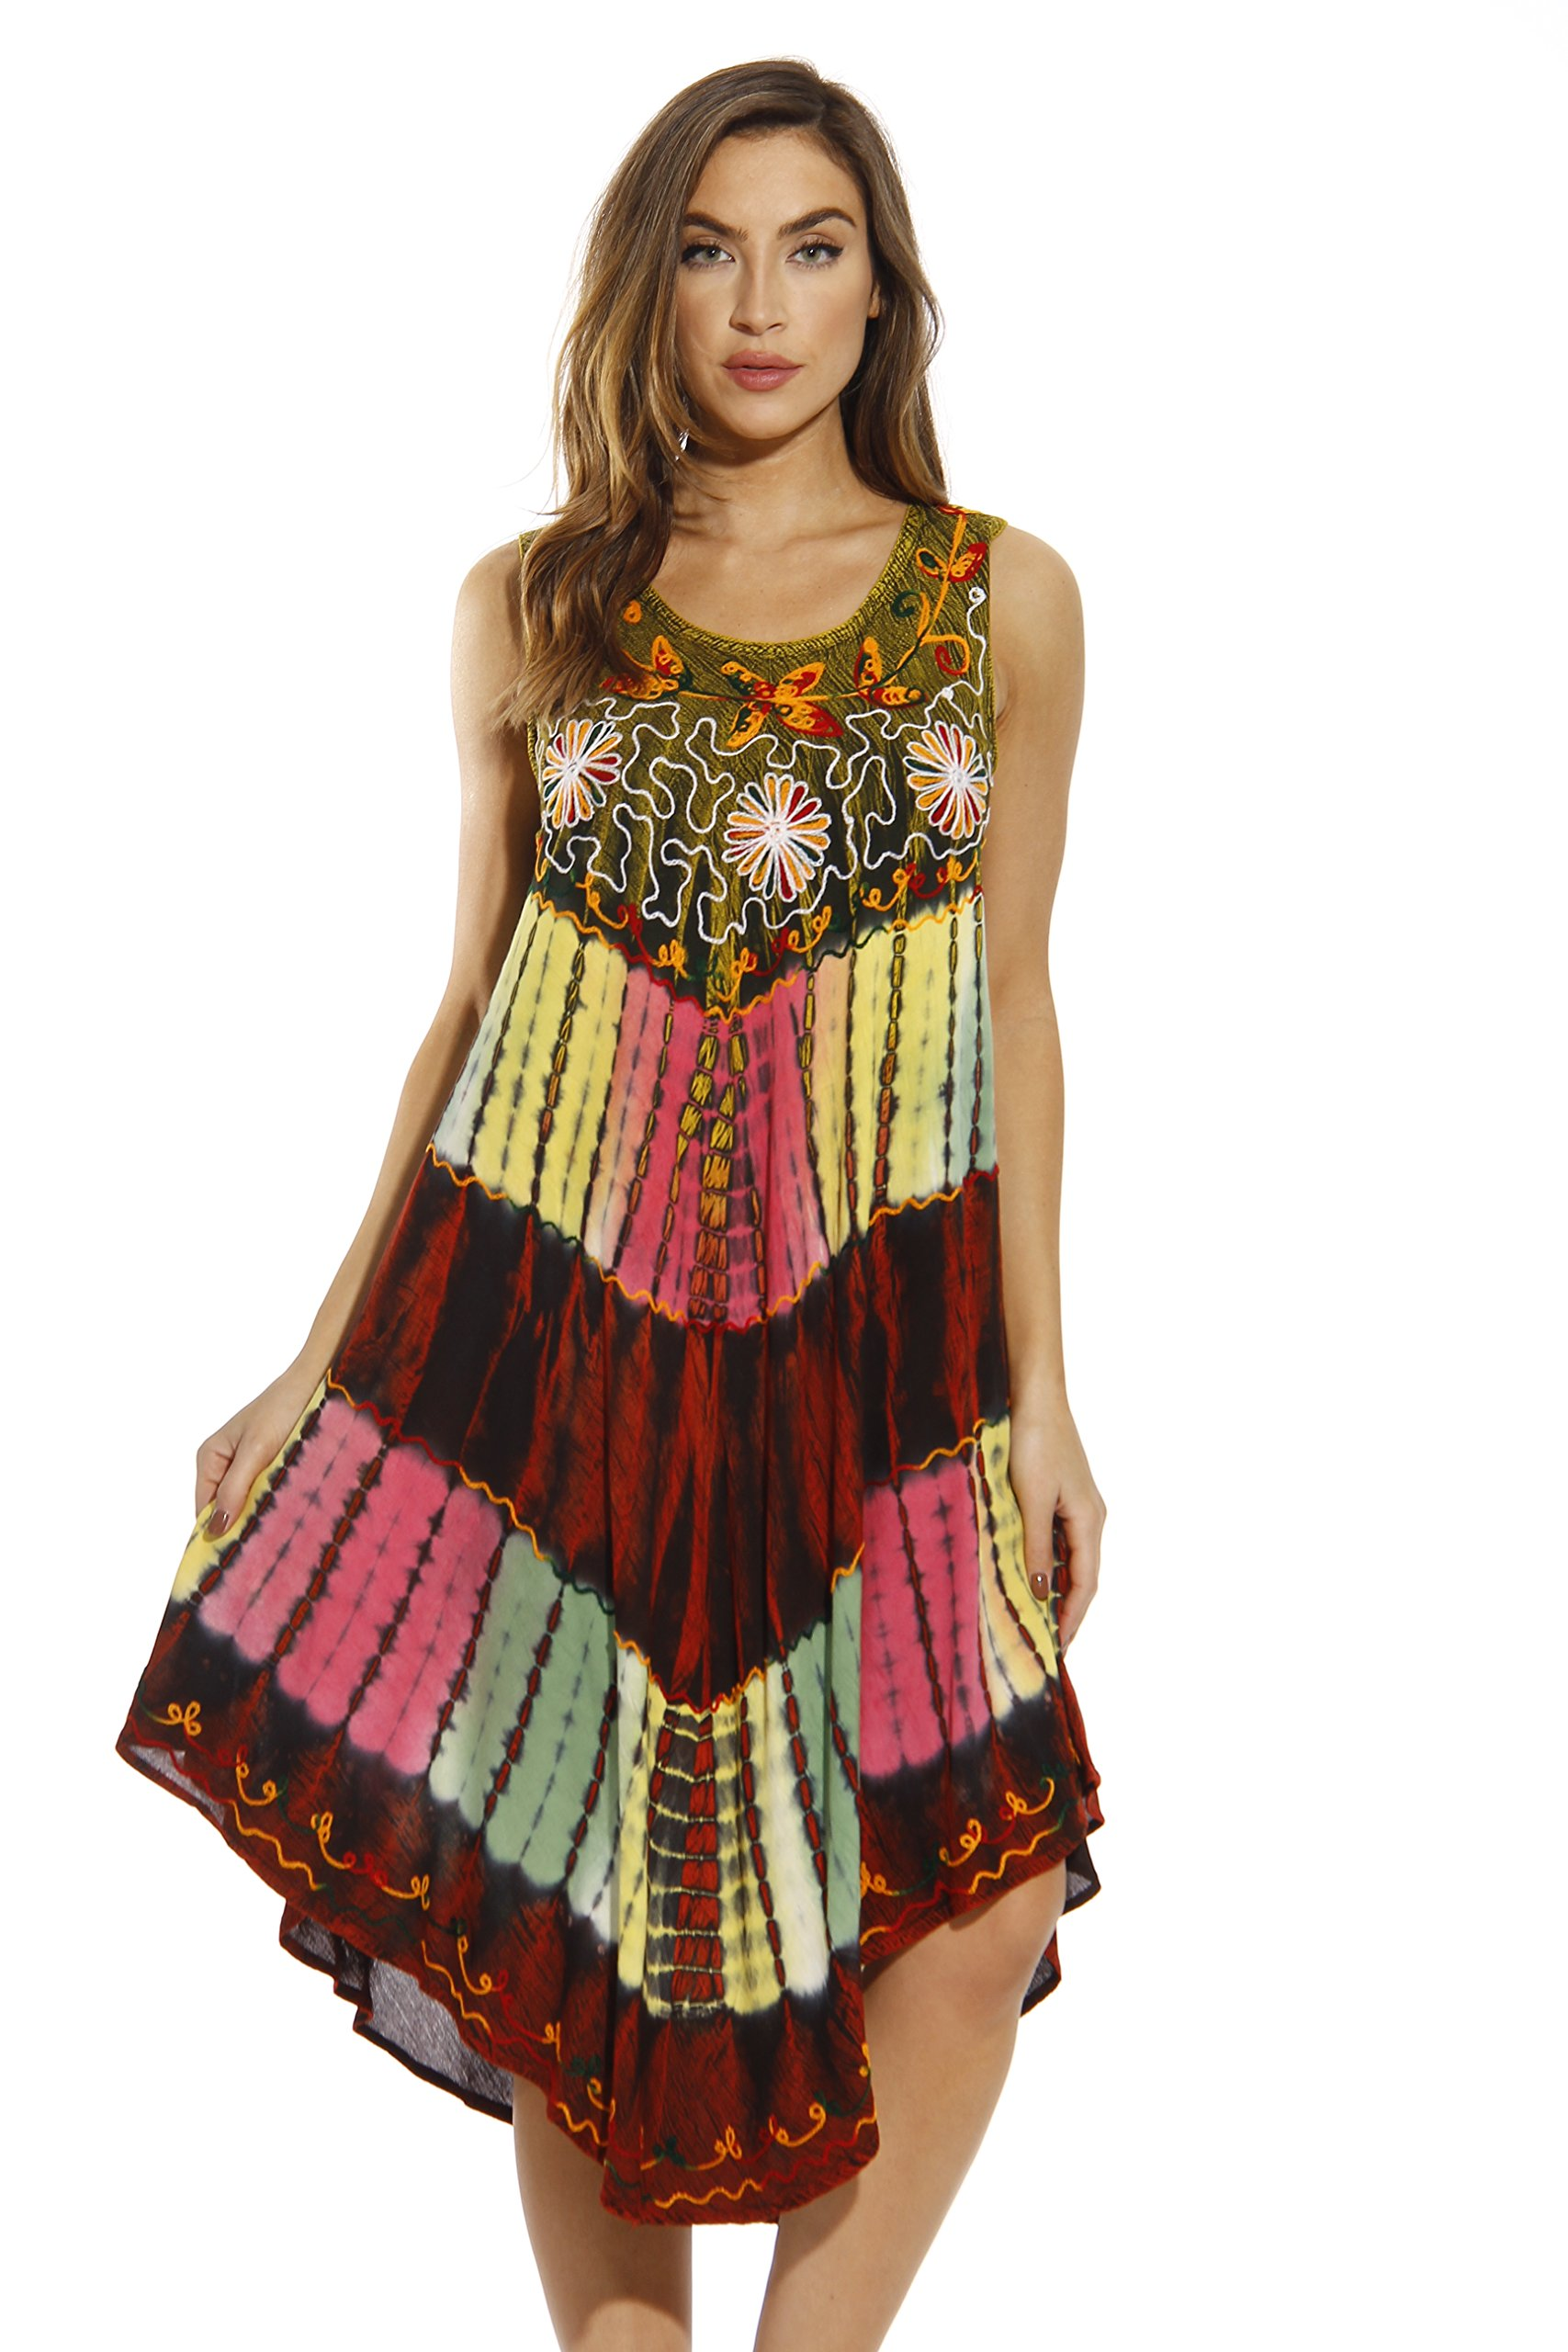 ab3ebcd4954 Galleon - Riviera Sun 21662-MUL-XL Summer Dresses Swimsuit Cover Up